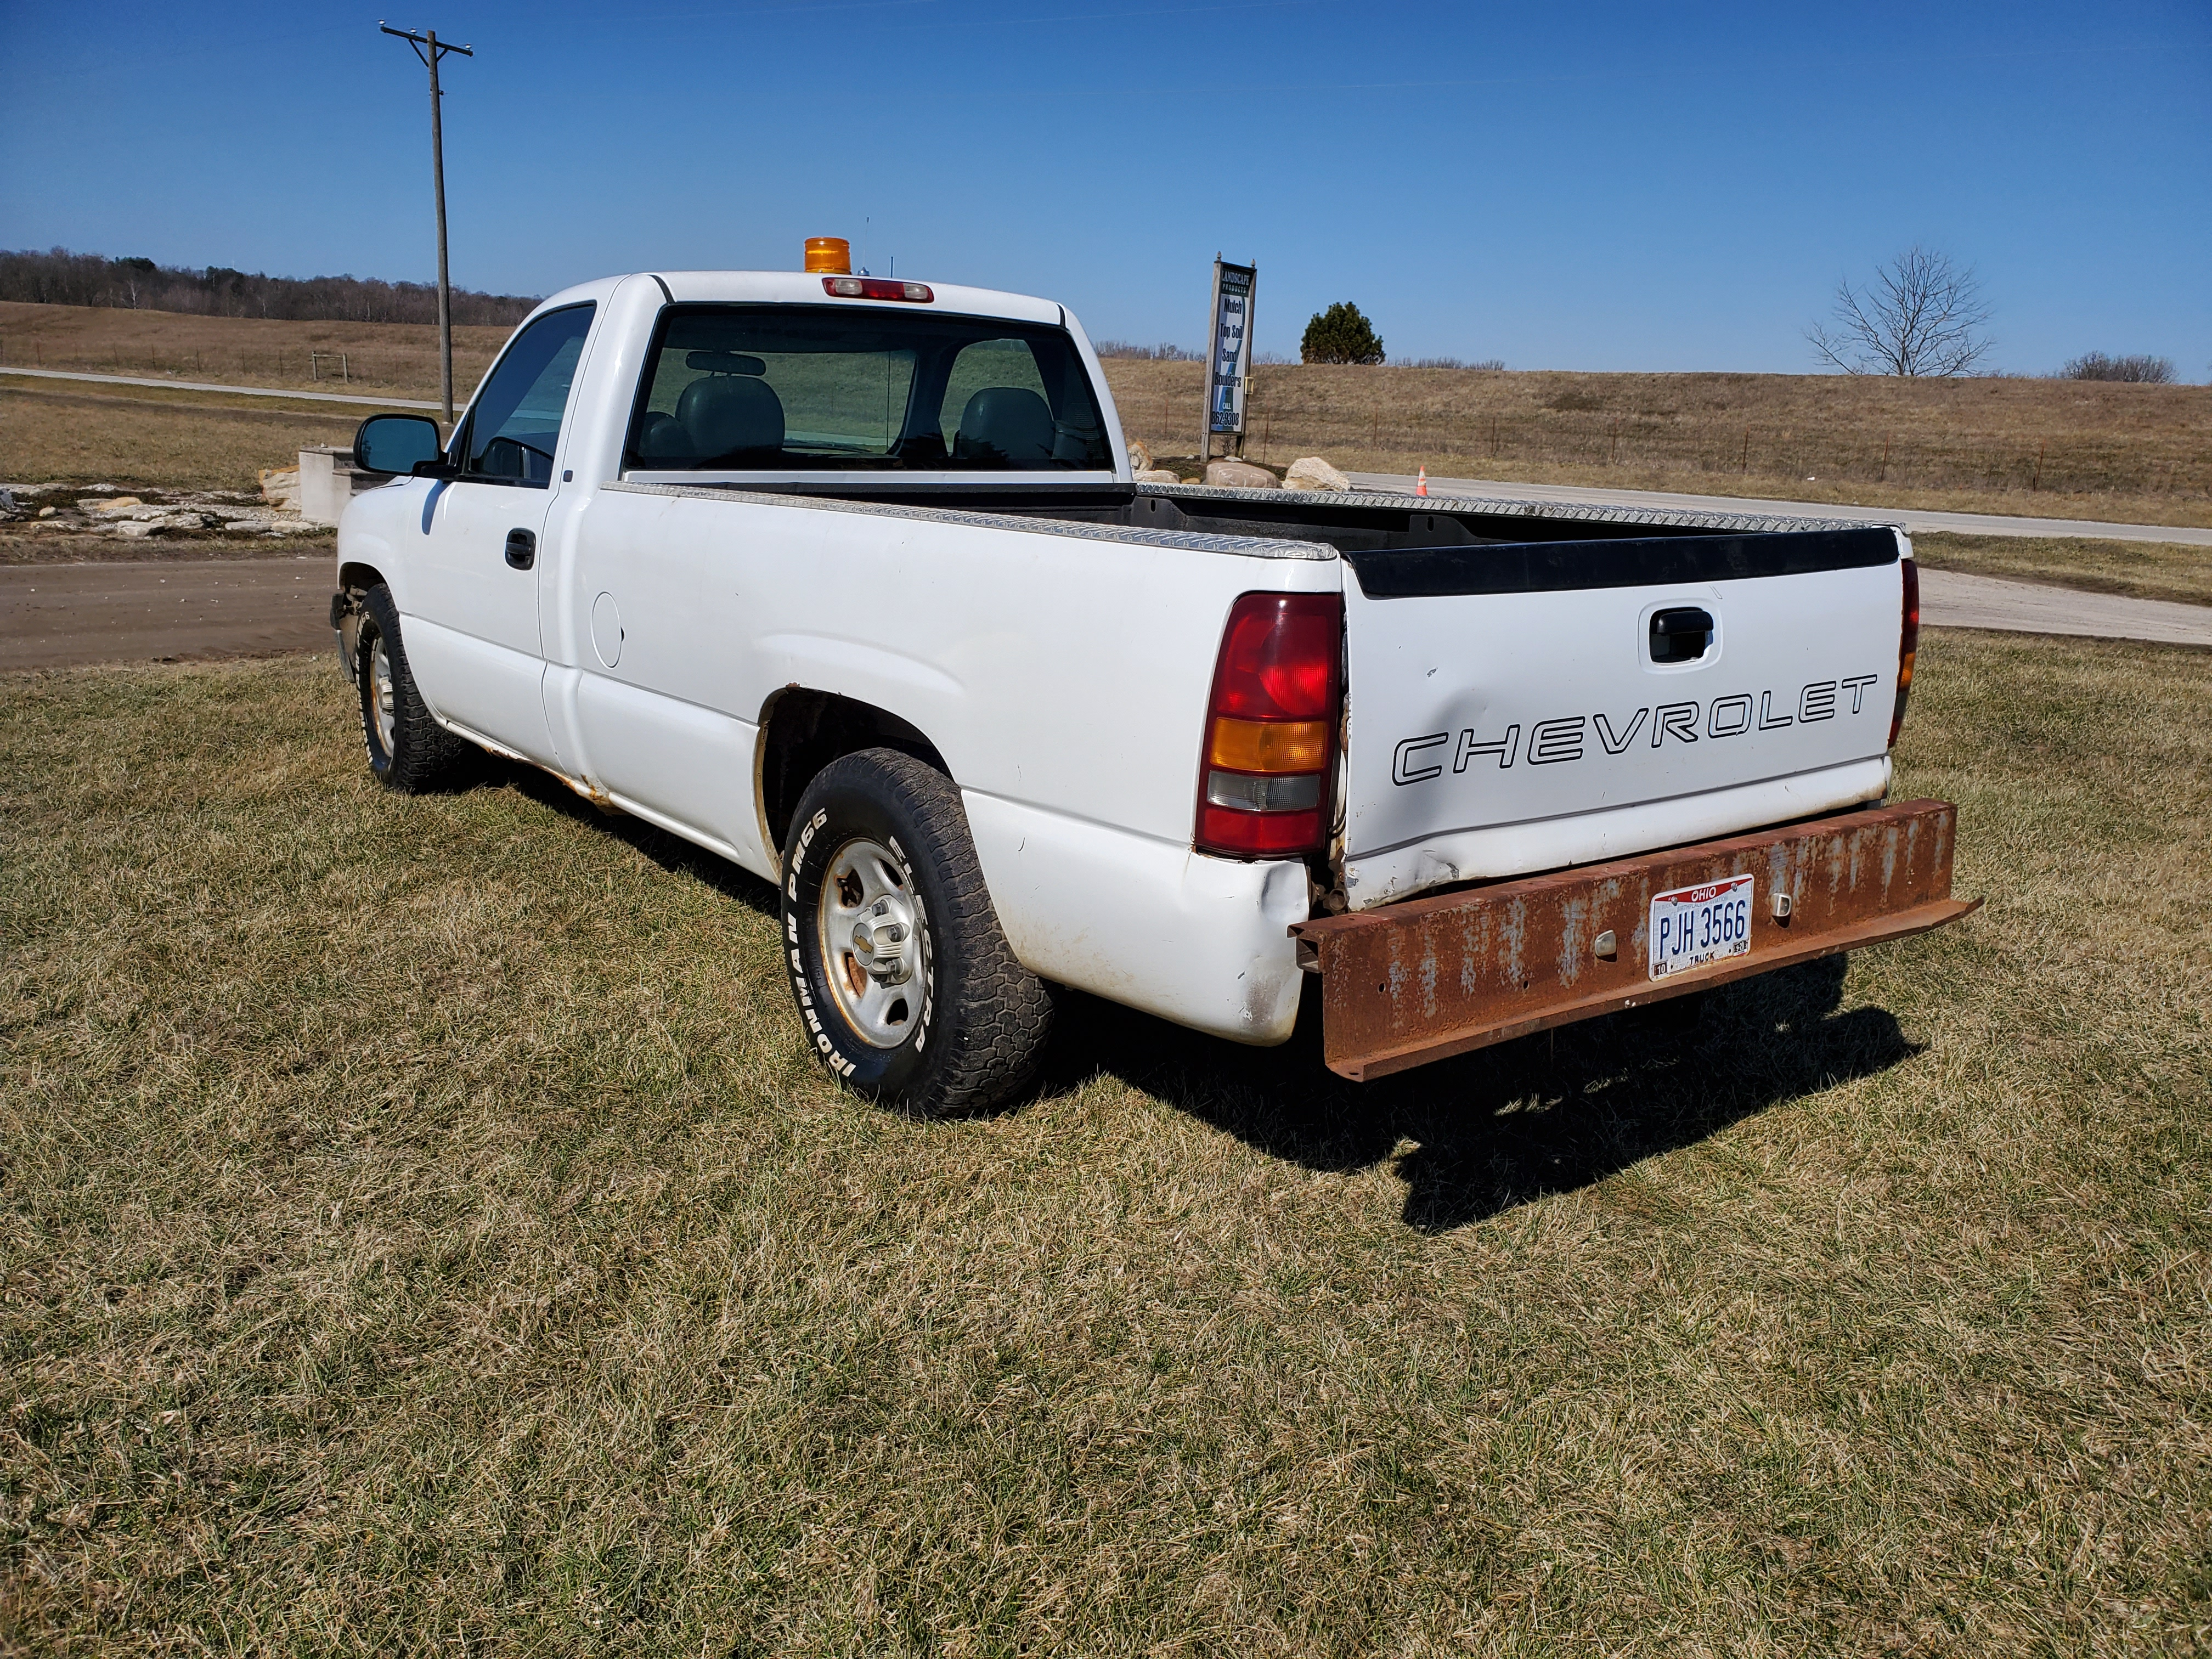 2001 Chevrolet 1500 Silverado 1500, 8 ft. Bed, 4.3 Liter Gasoline Engine, Automatic, 137,712 Miles - Image 8 of 17